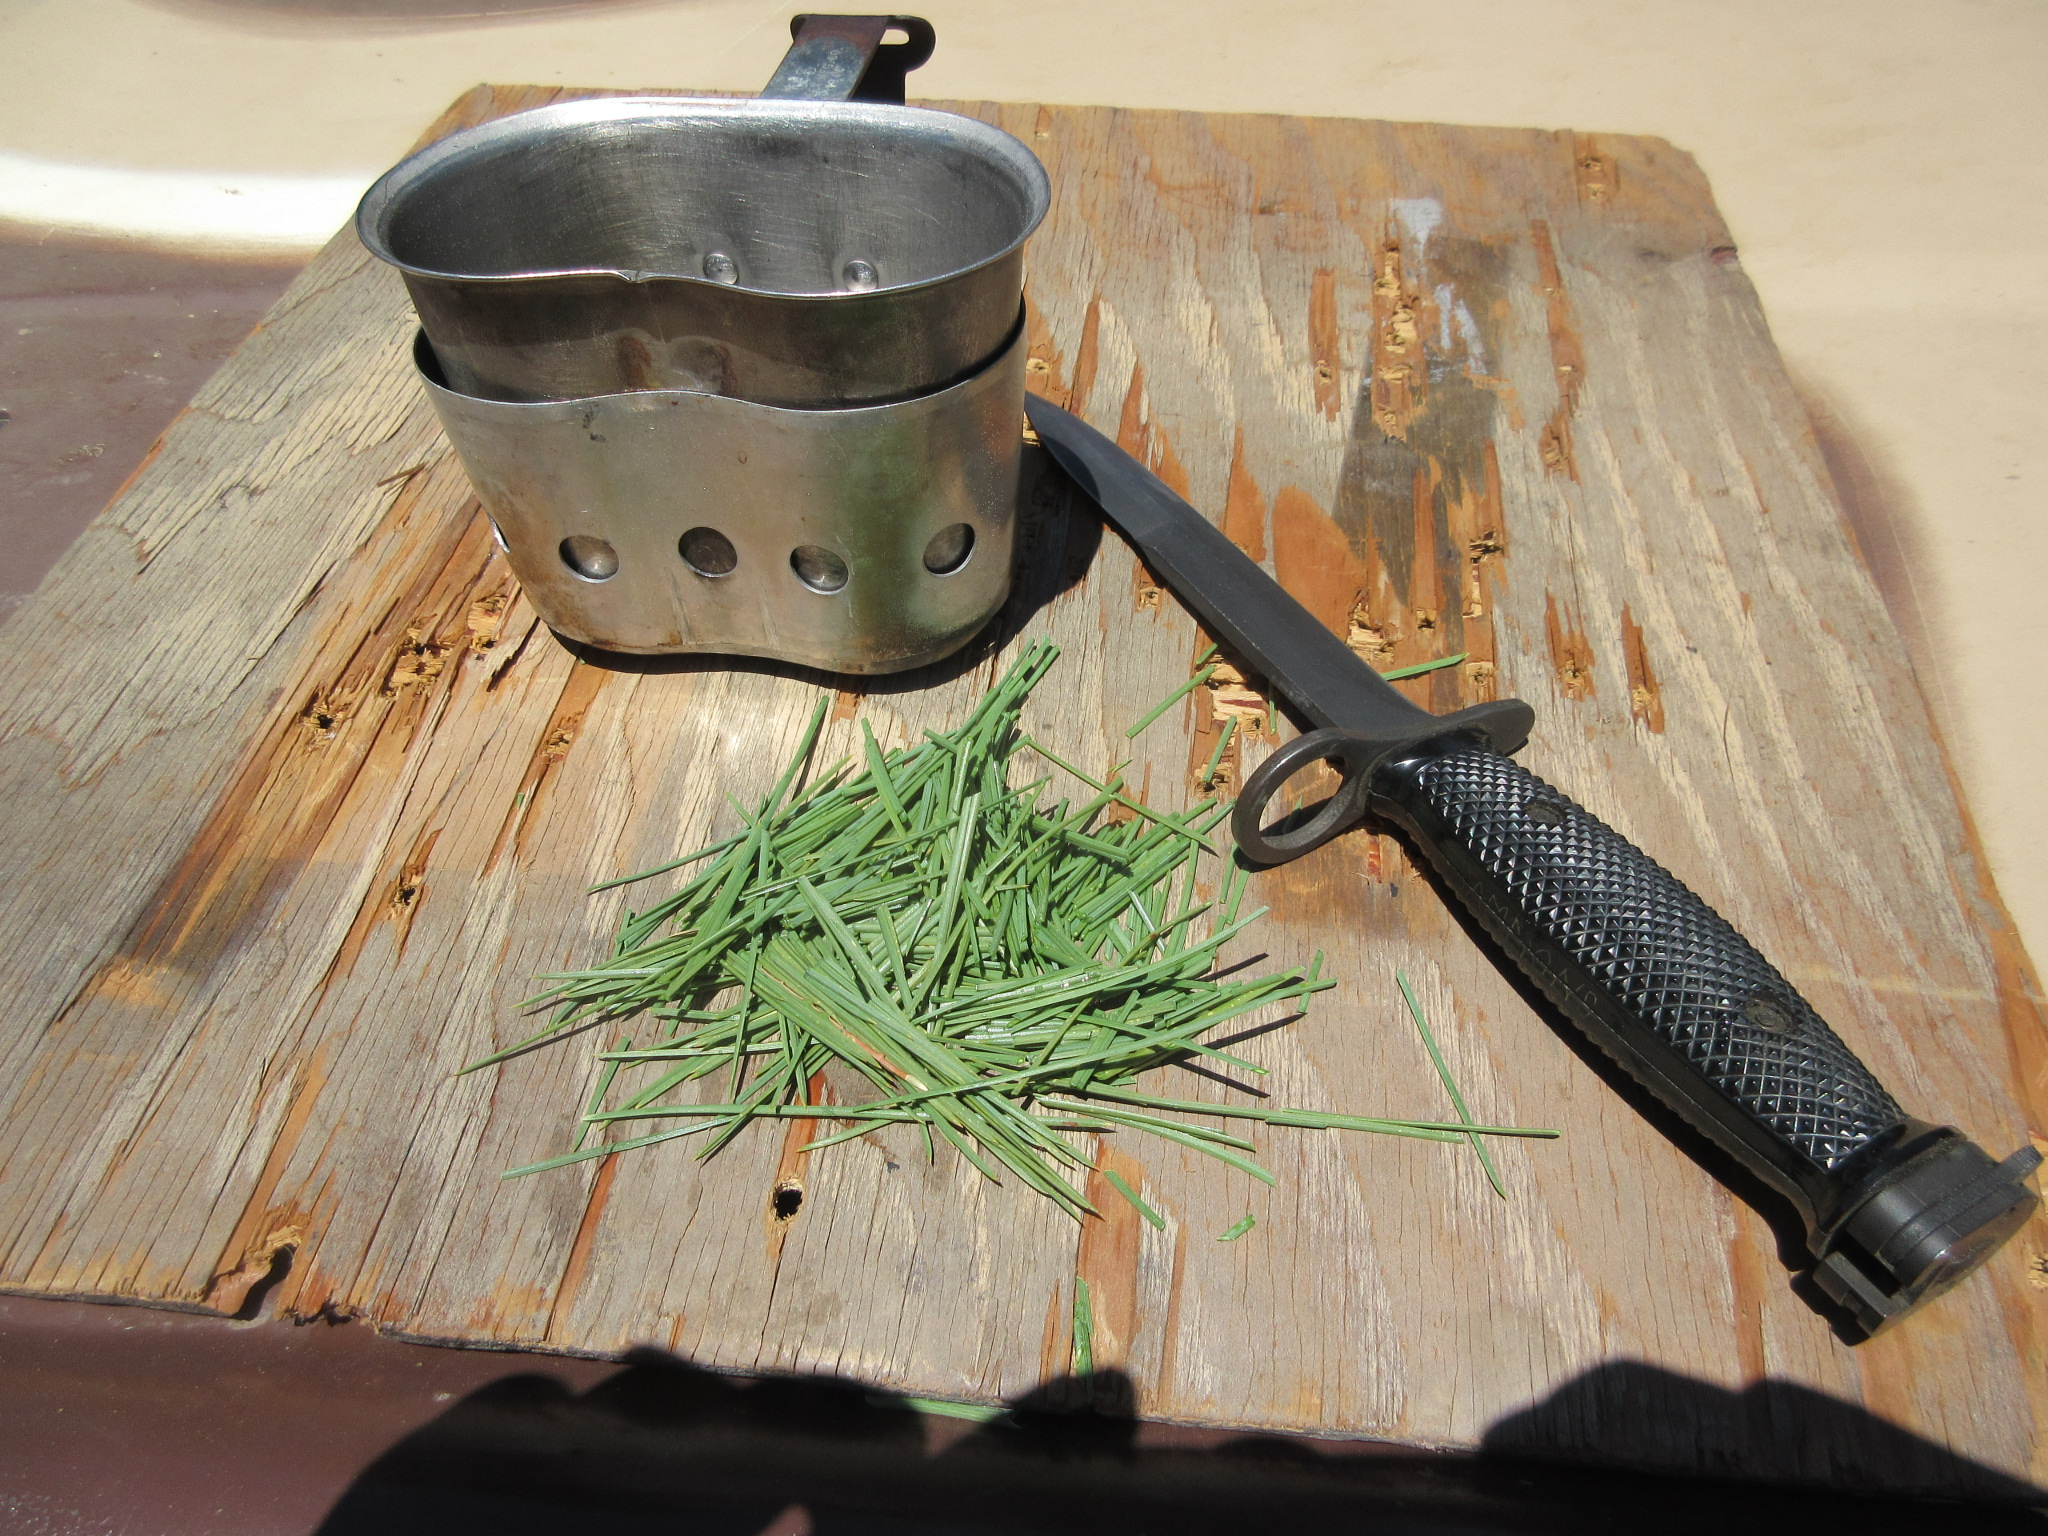 Preparing Pine Needle Tea